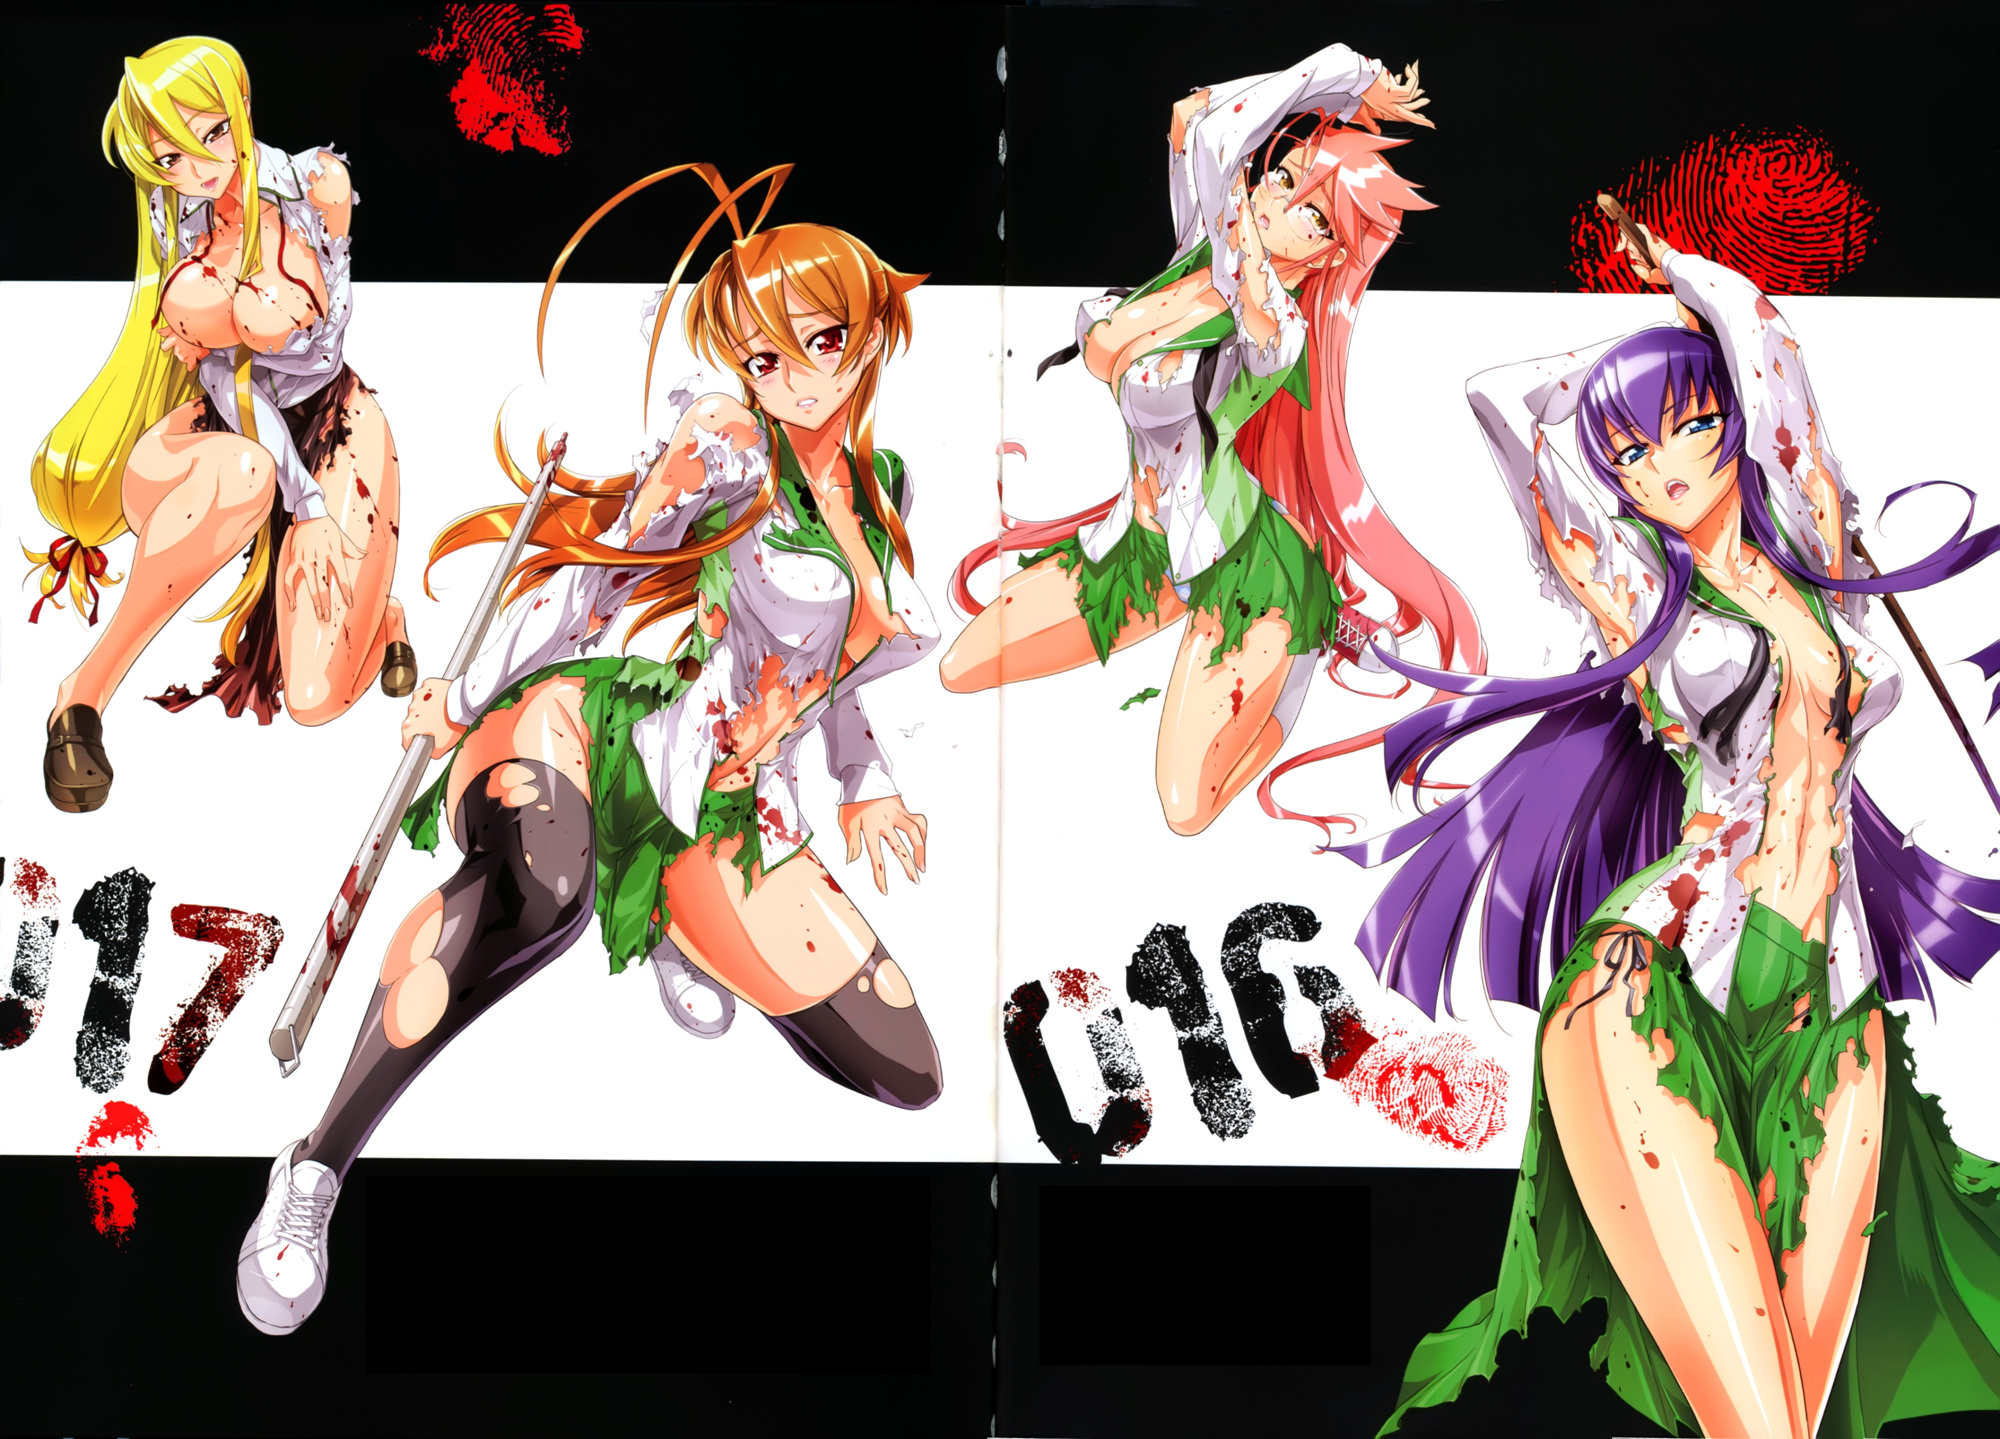 Highschool Of The Dead Wallpapers Anime Hq Highschool Of The